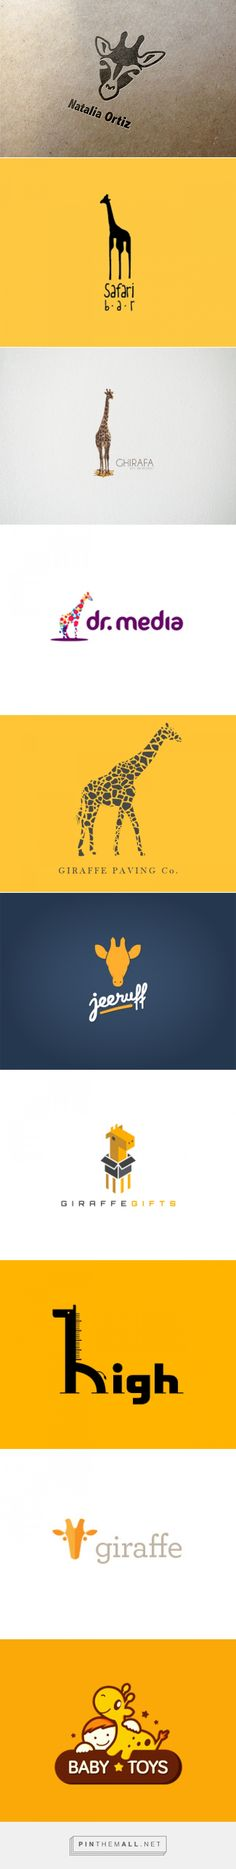 Logo Design: More Giraffes | Abduzeedo Design Inspiration - created via https://pinthemall.net